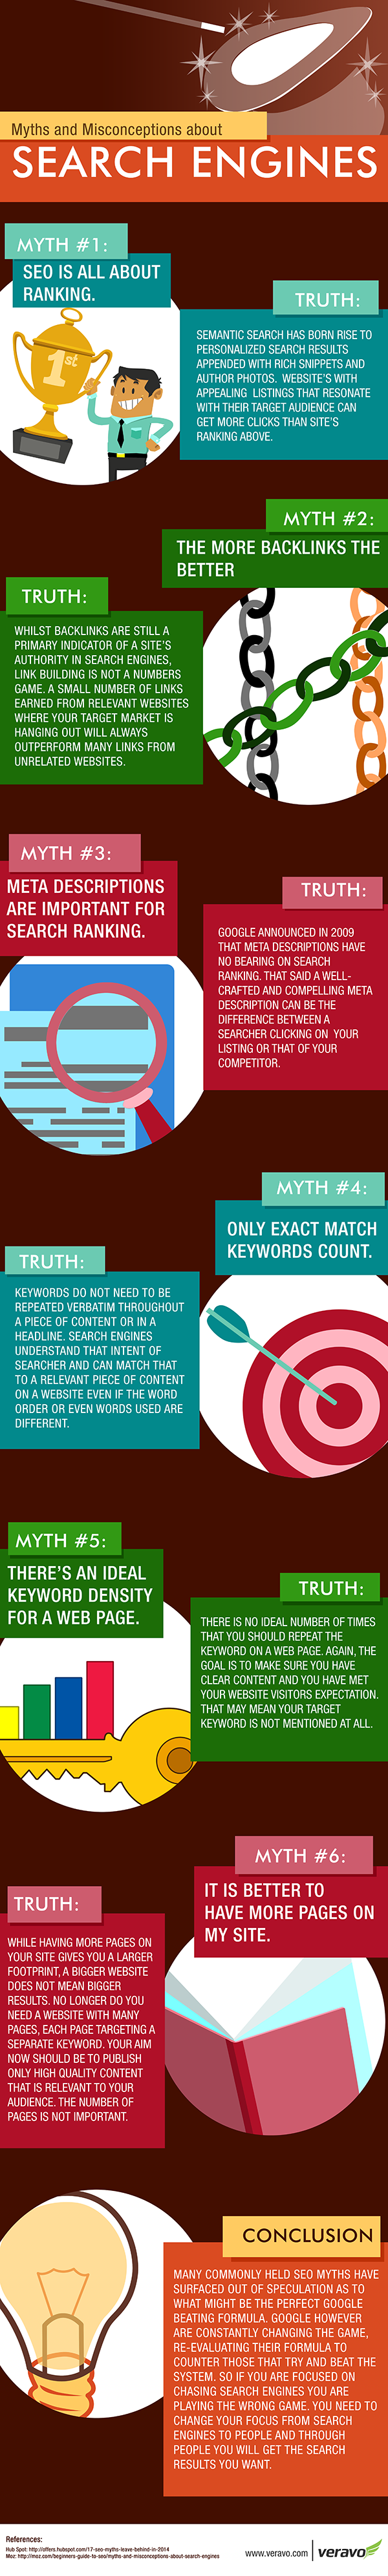 Infographic: Top SEO Myths